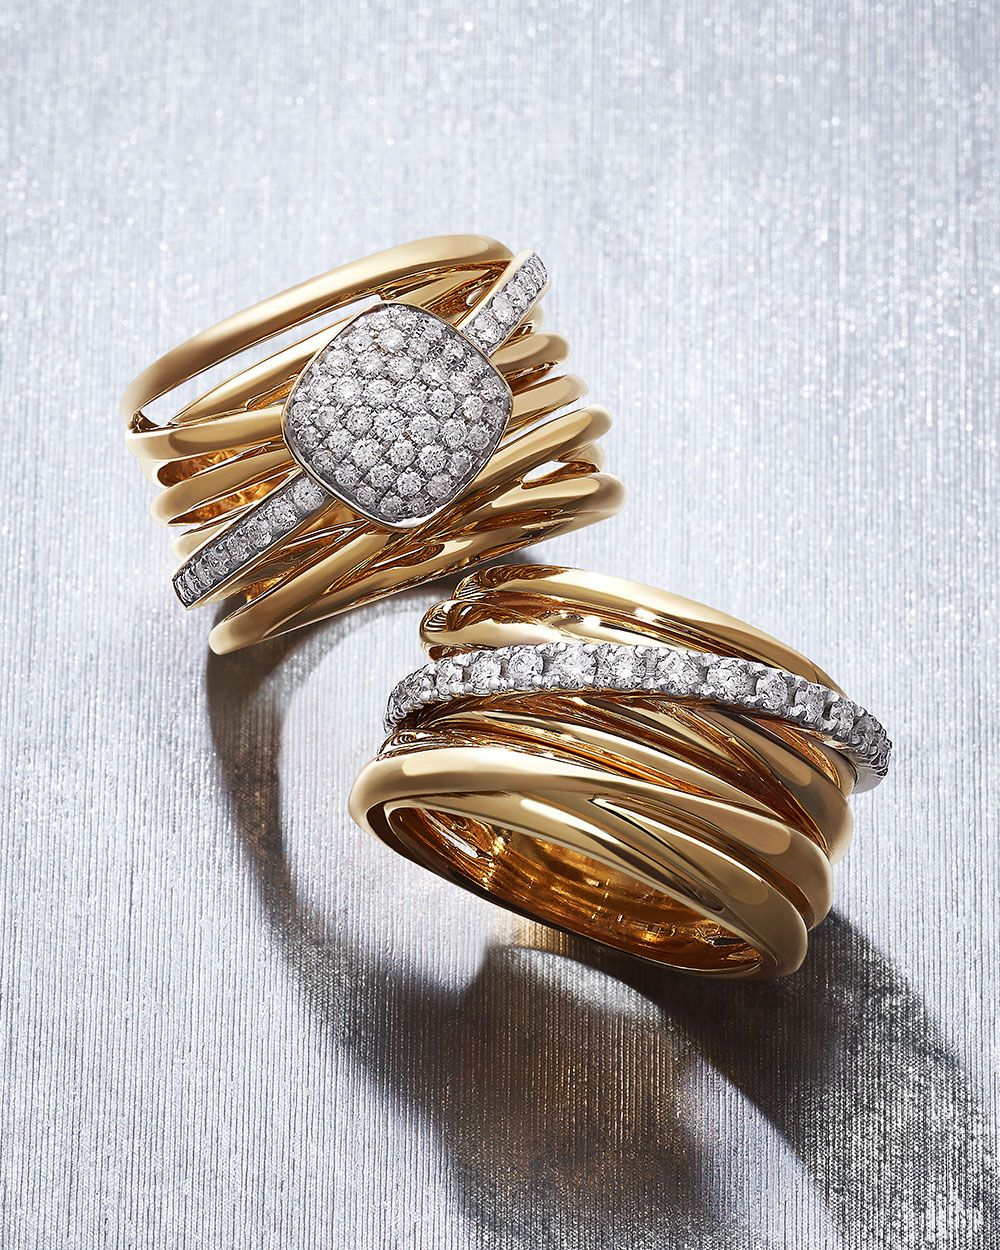 A vision in polished gold pieces cast with glittering